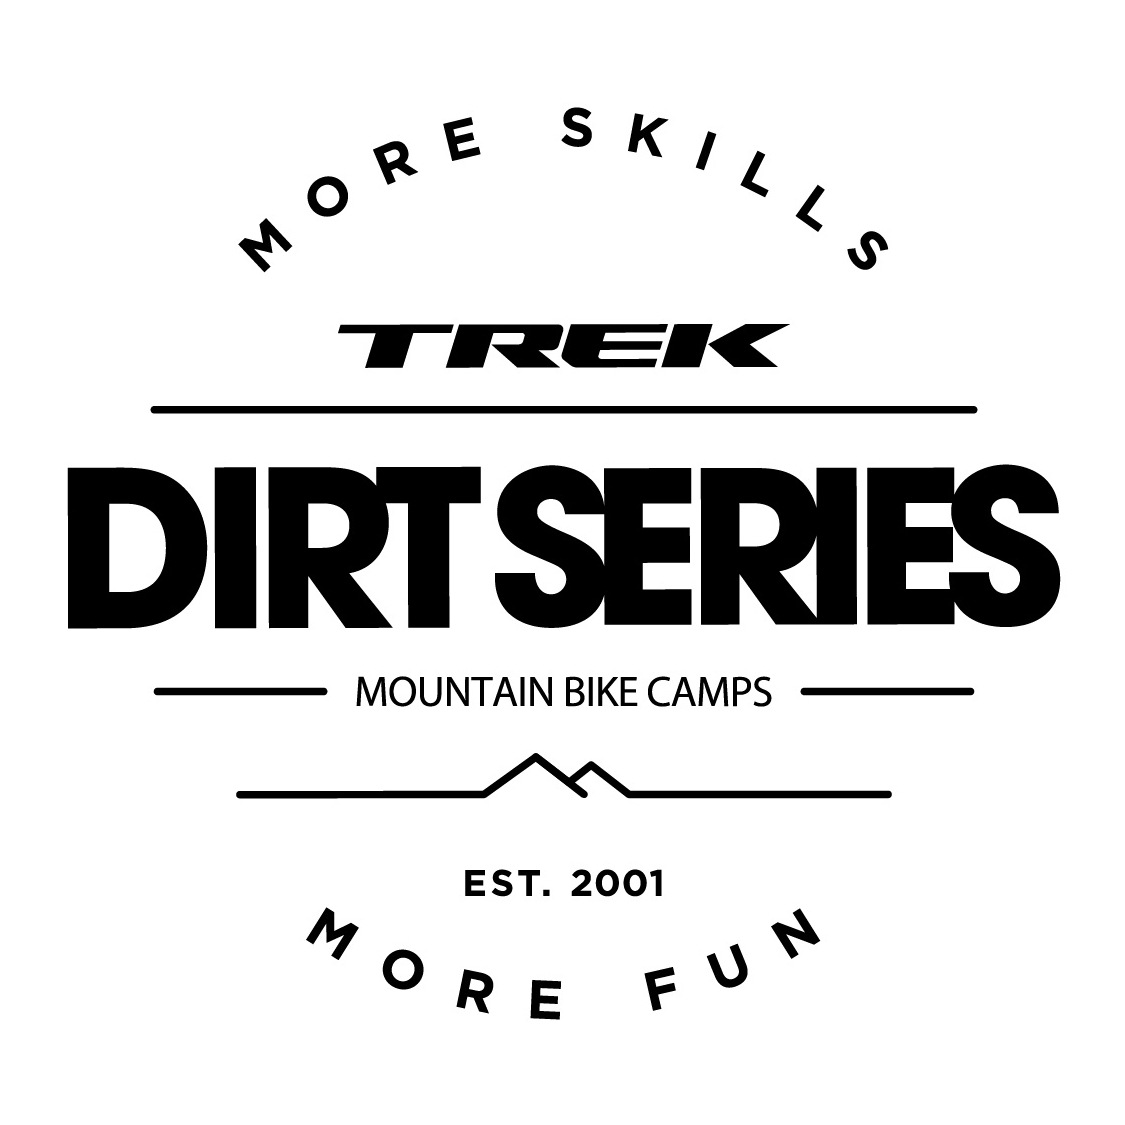 Dirt Series Mountain Bike Camp (co-ed) - Winthrop, WA